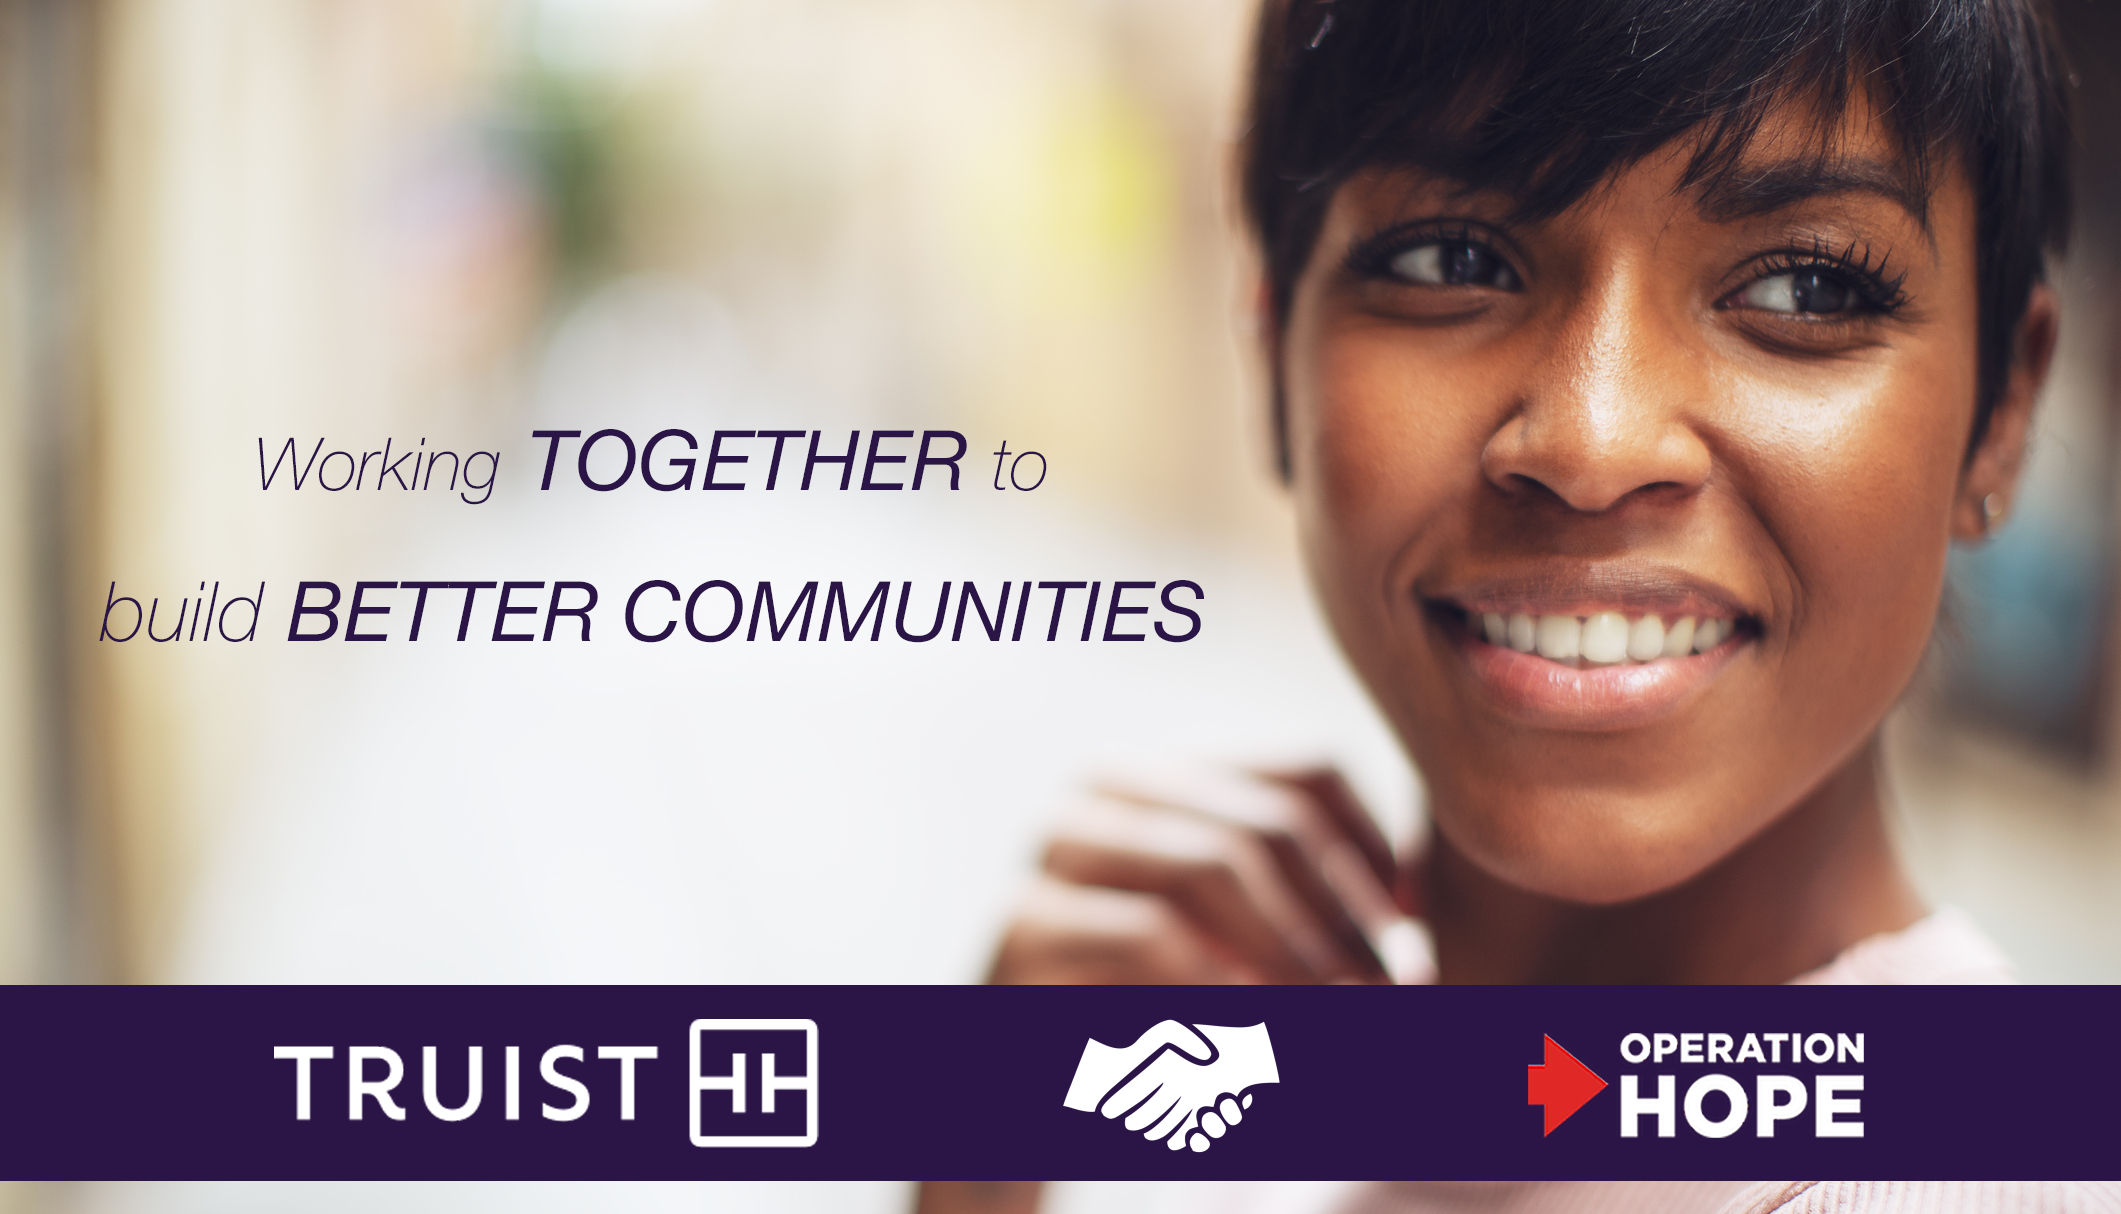 TRUIST'S $20 MILLION OPERATION HOPE INVESTMENT EXPANDS FINANCIAL INCLUSION TO MORE COMMUNITIES